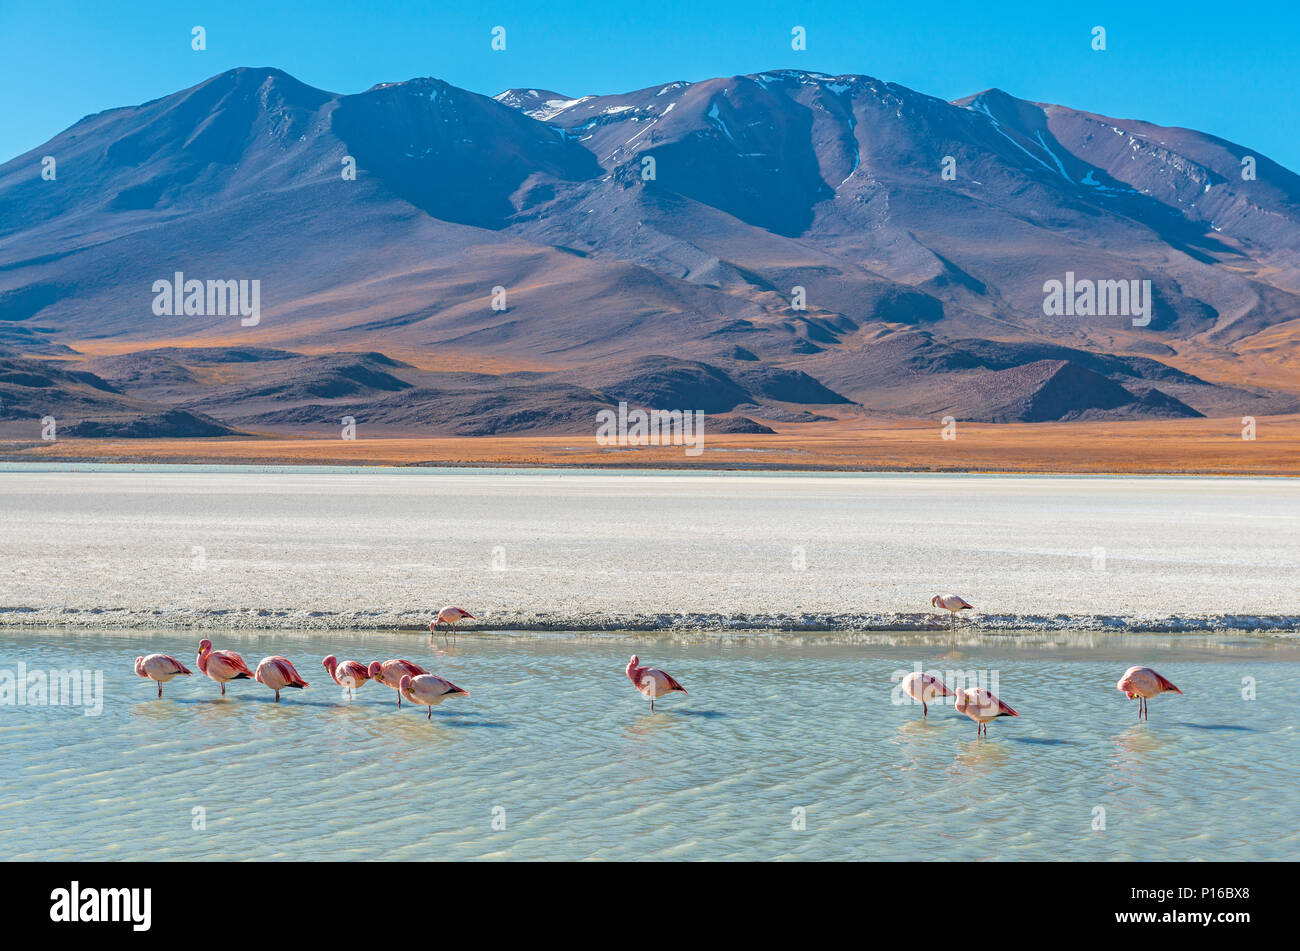 Landscape photograph with a few hundred James and Chilean flamingos in the Canapa Lagoon in the Andes mountain range near the Uyuni salt flat, Bolivia Stock Photo